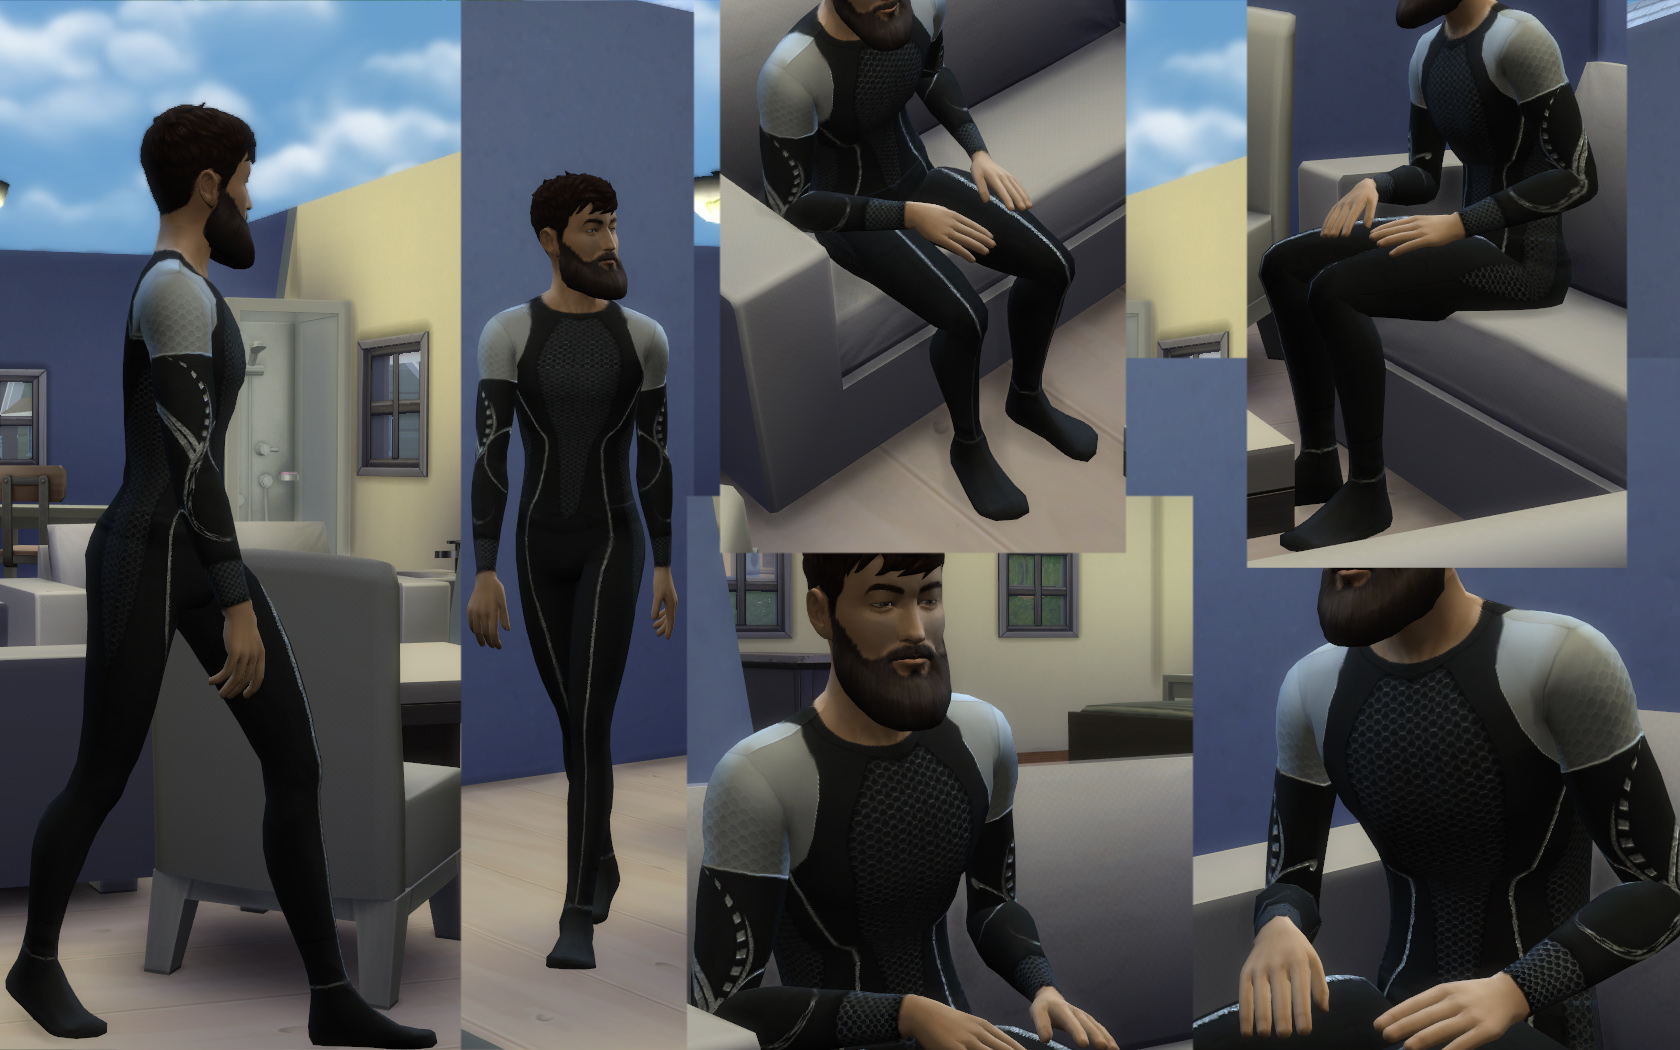 Mod The Sims - Male Hunger Games Top and Bottom